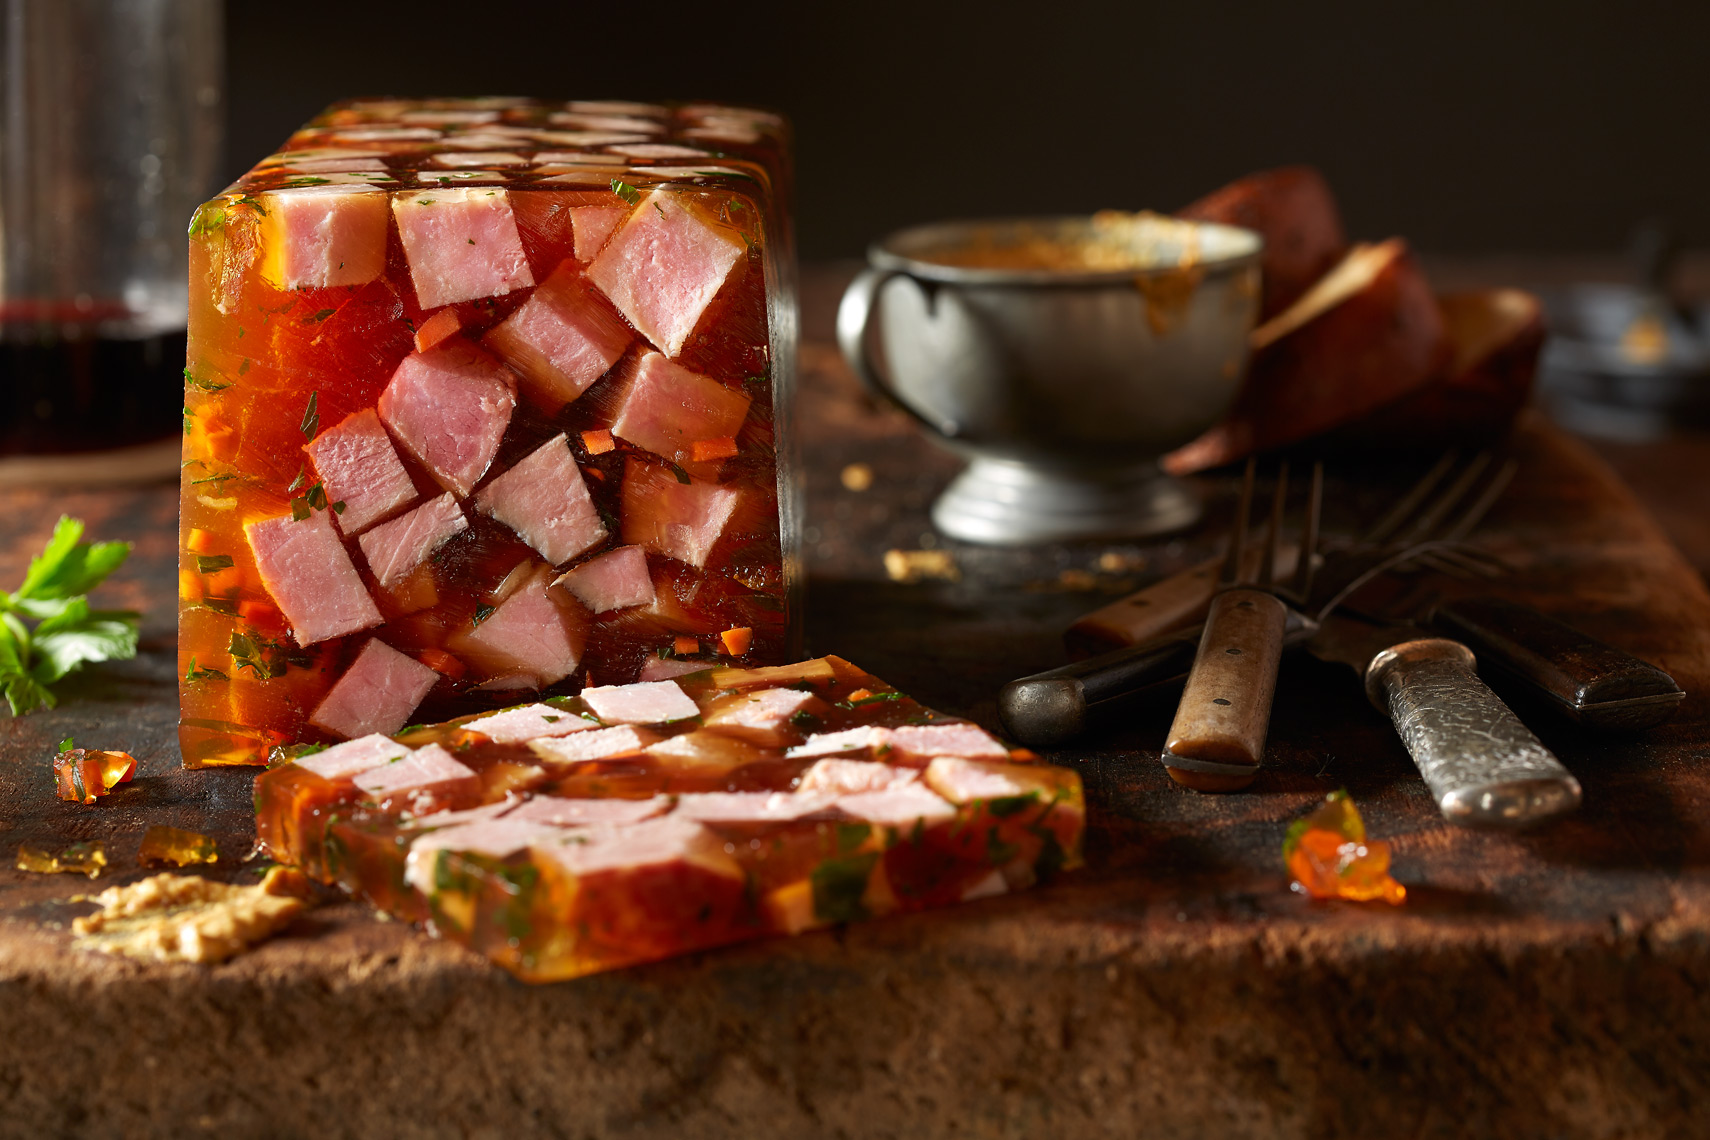 Marx_Food_photography_Ham_Terrine_Rustic_Table